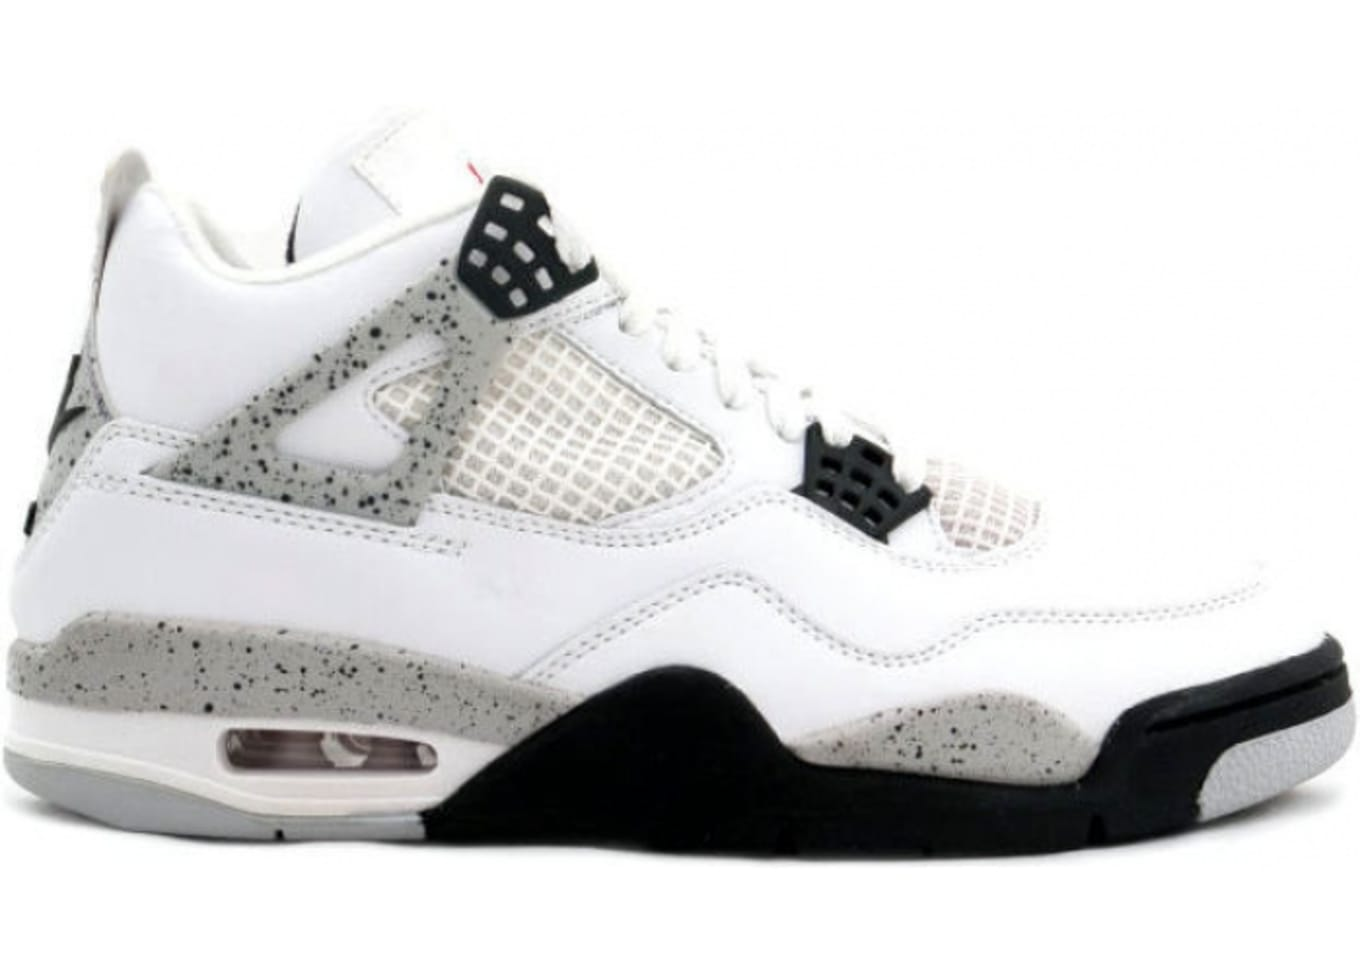 sneakers for cheap 7455d c3a3c The Air Jordan 4 Price Guide | Sole Collector